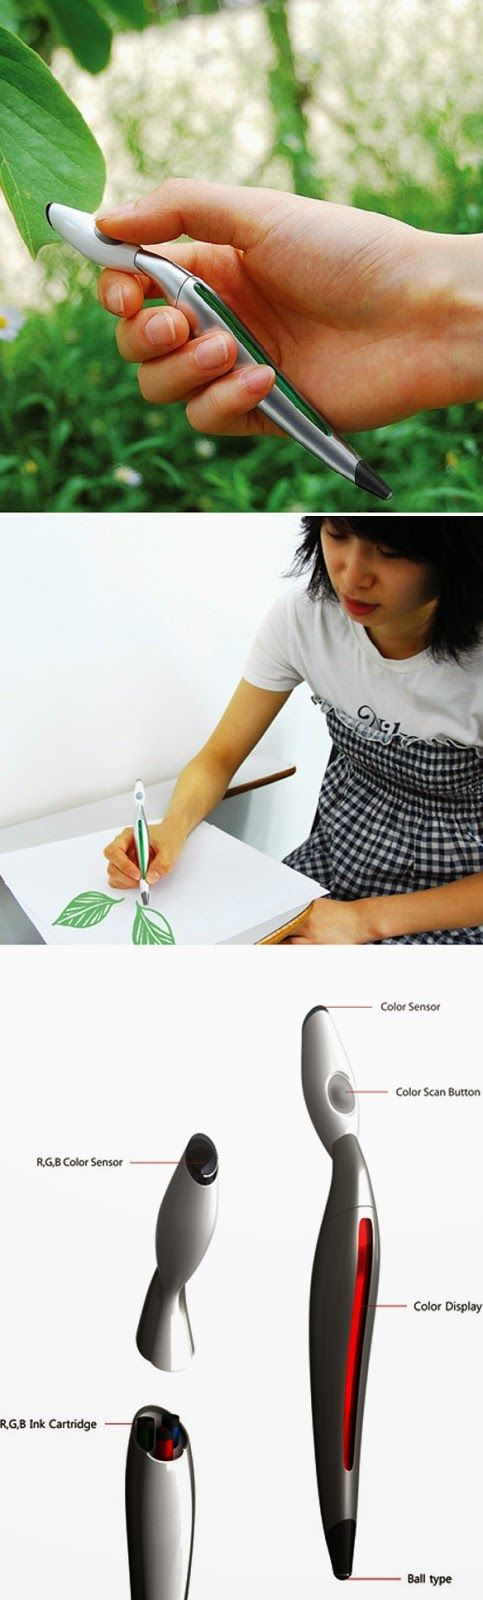 compact accurate color picker pen that picks any color around you and draws in that same color, the Scribble, is the subject of a new Kickstarter